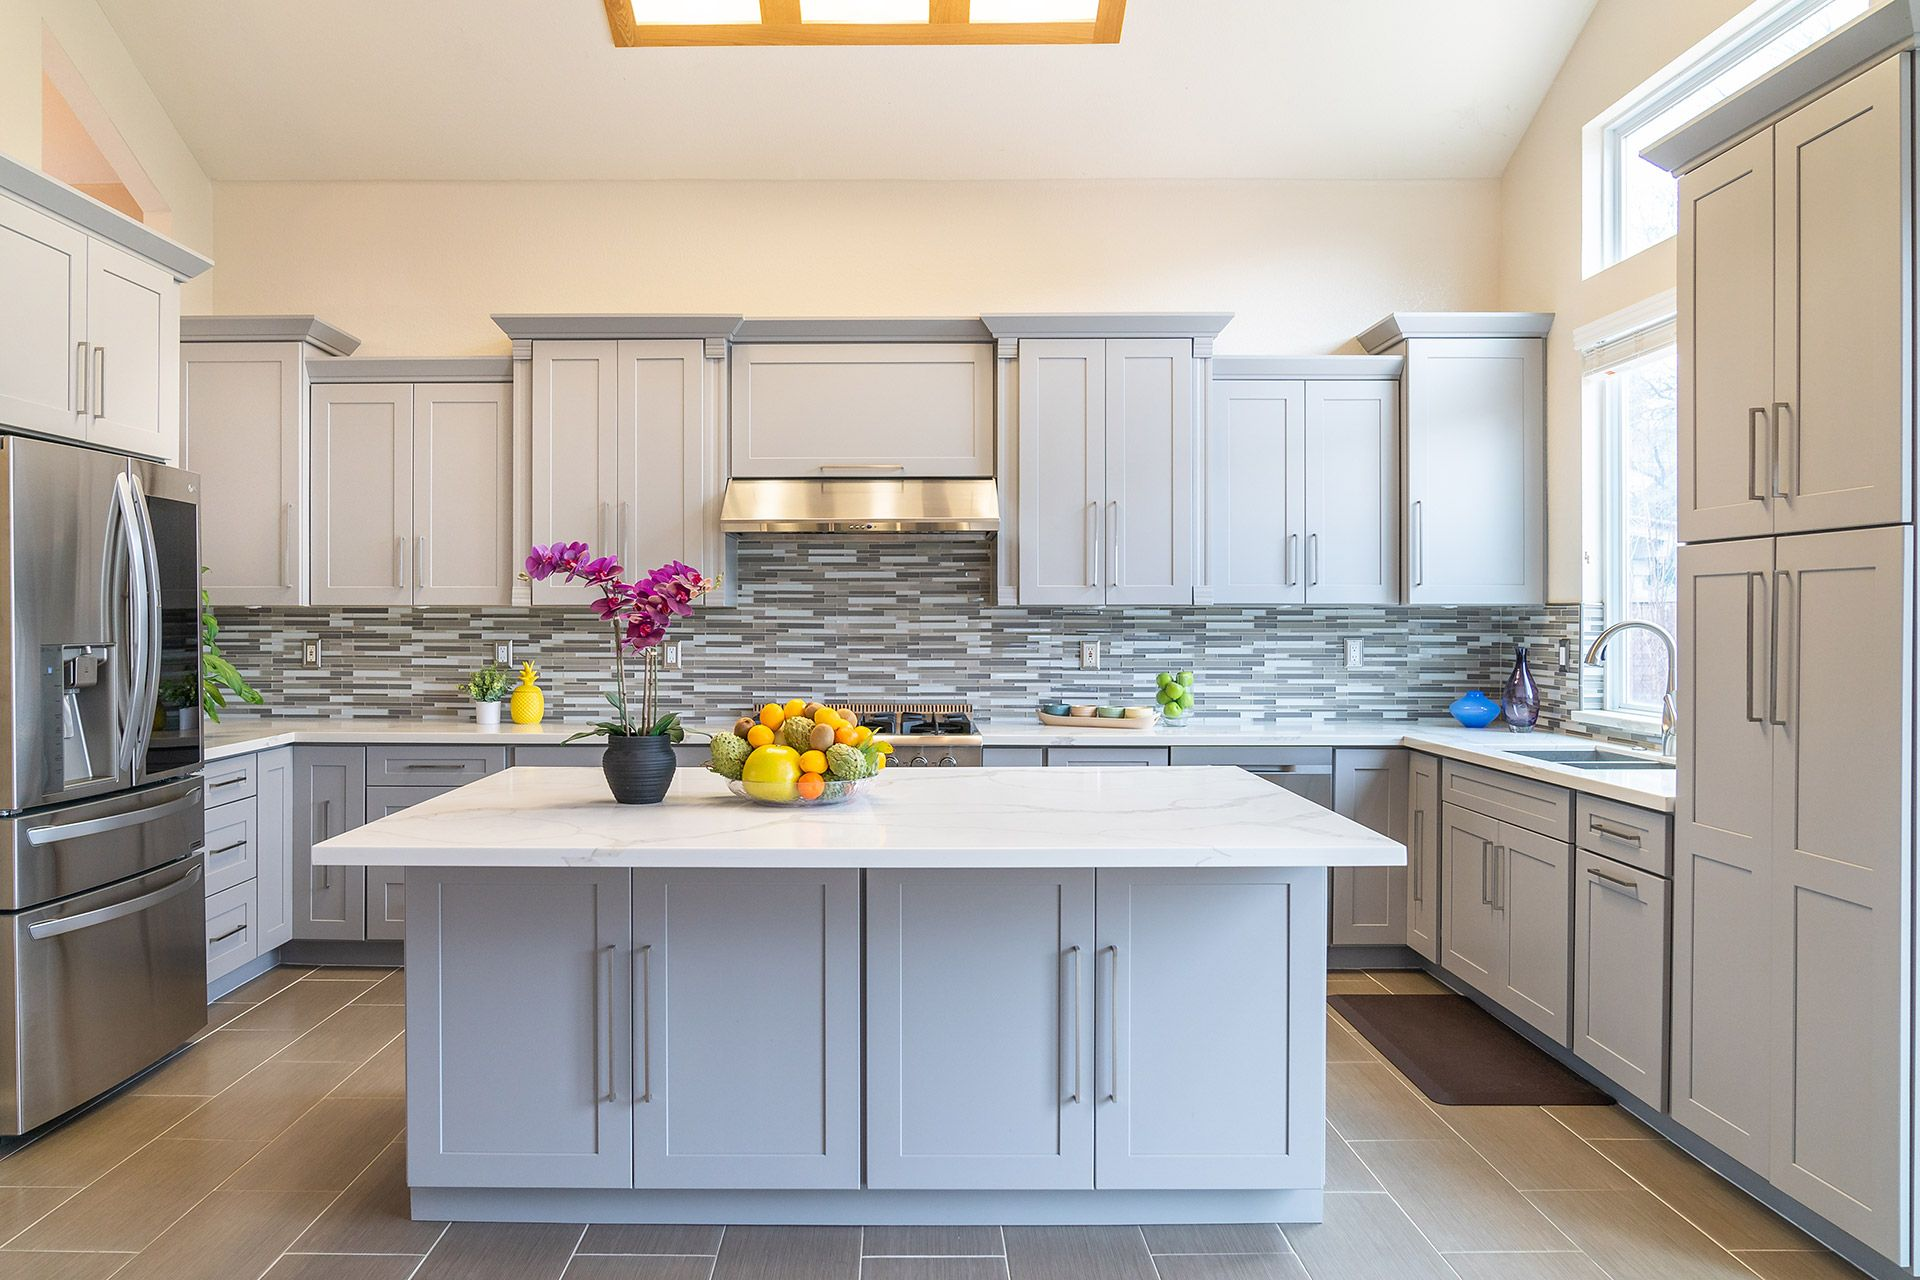 Pin By Nhut Pham On Real Estate Photography In 2020 Beautiful Backsplash Kitchen Cabinets Cabinet